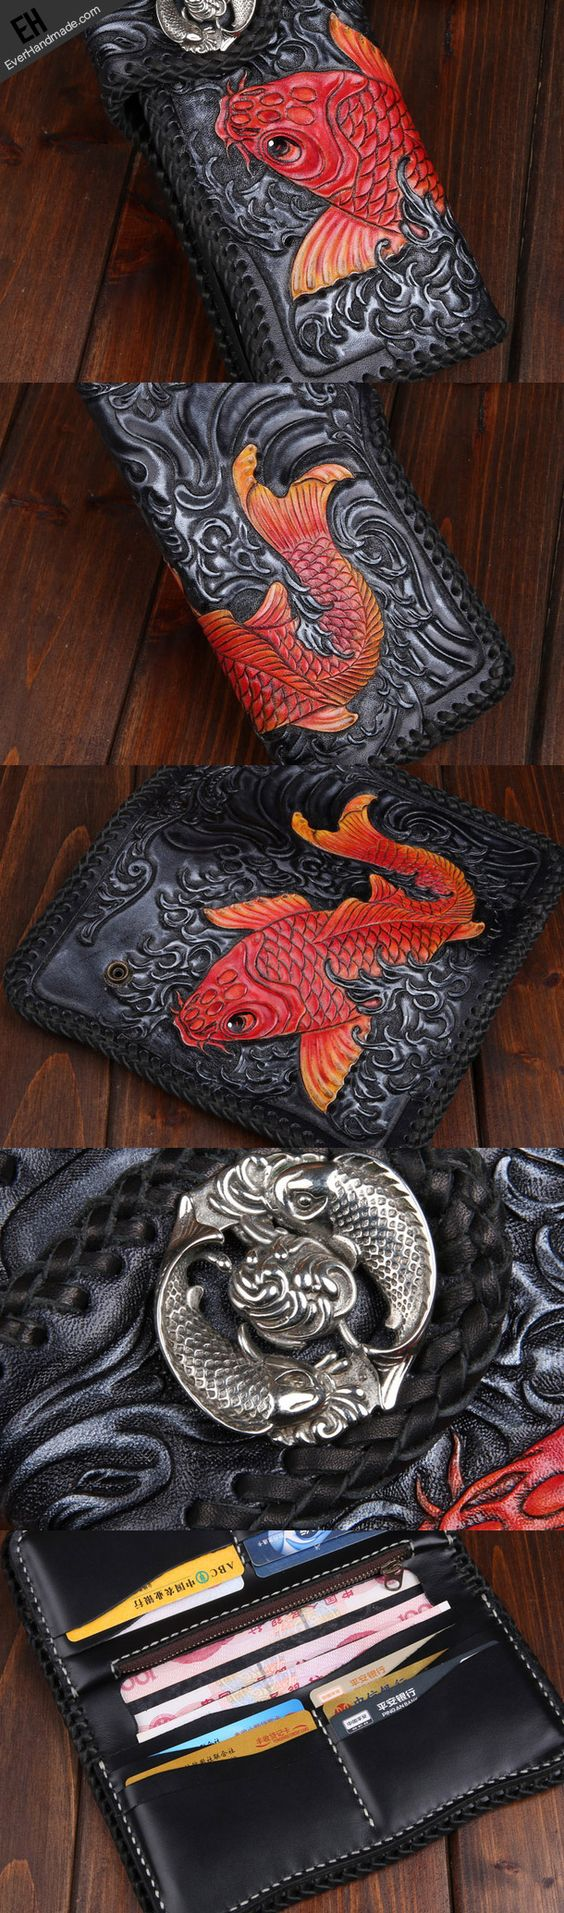 Handmade leather Black biker trucker wallet leather chain men red carp Carved Tooled wallet